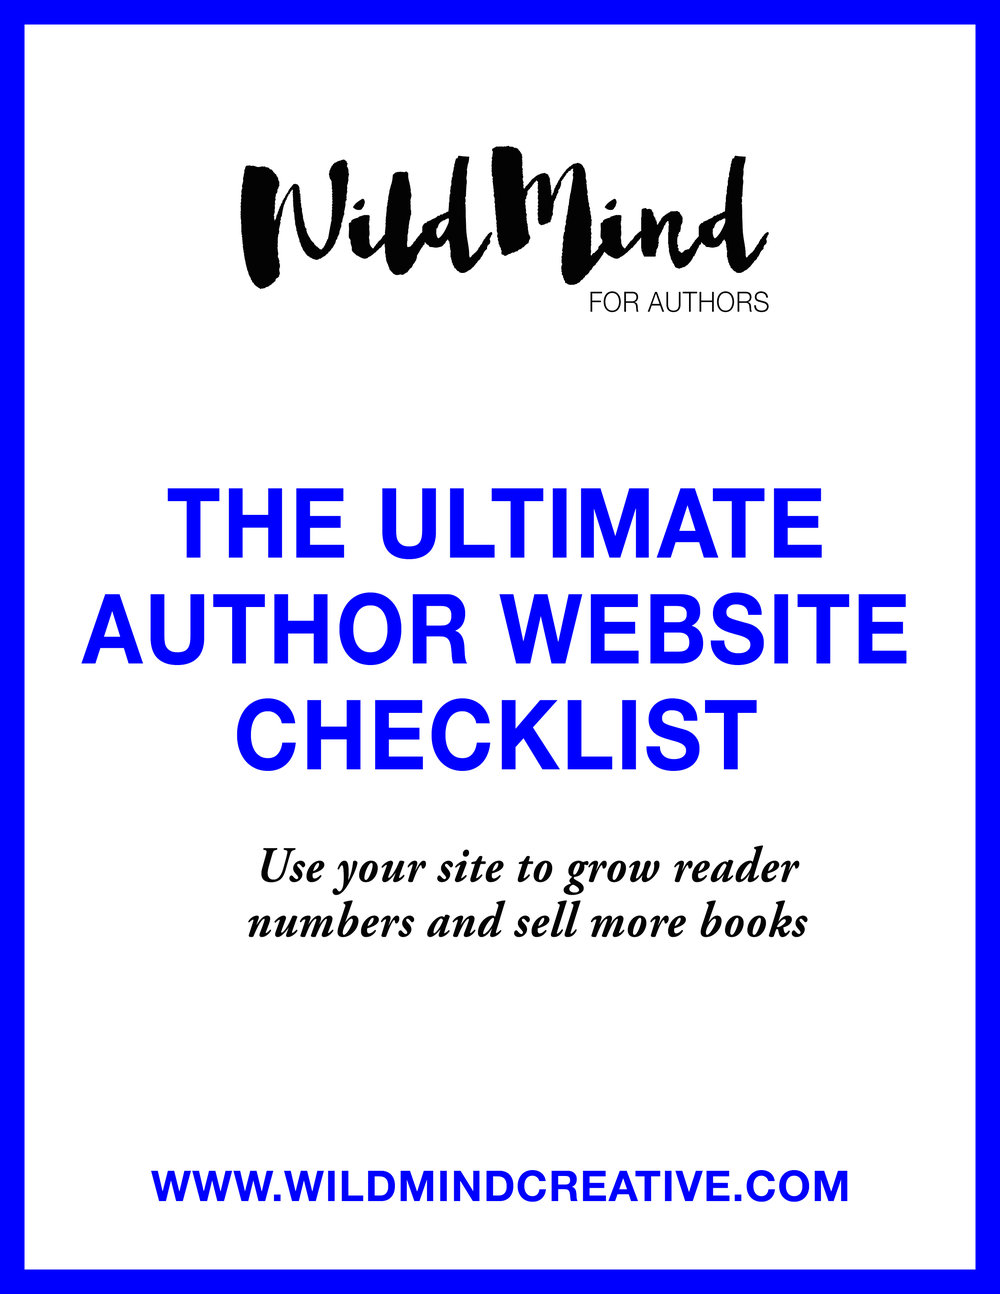 The Ultimate Author Website Checklist